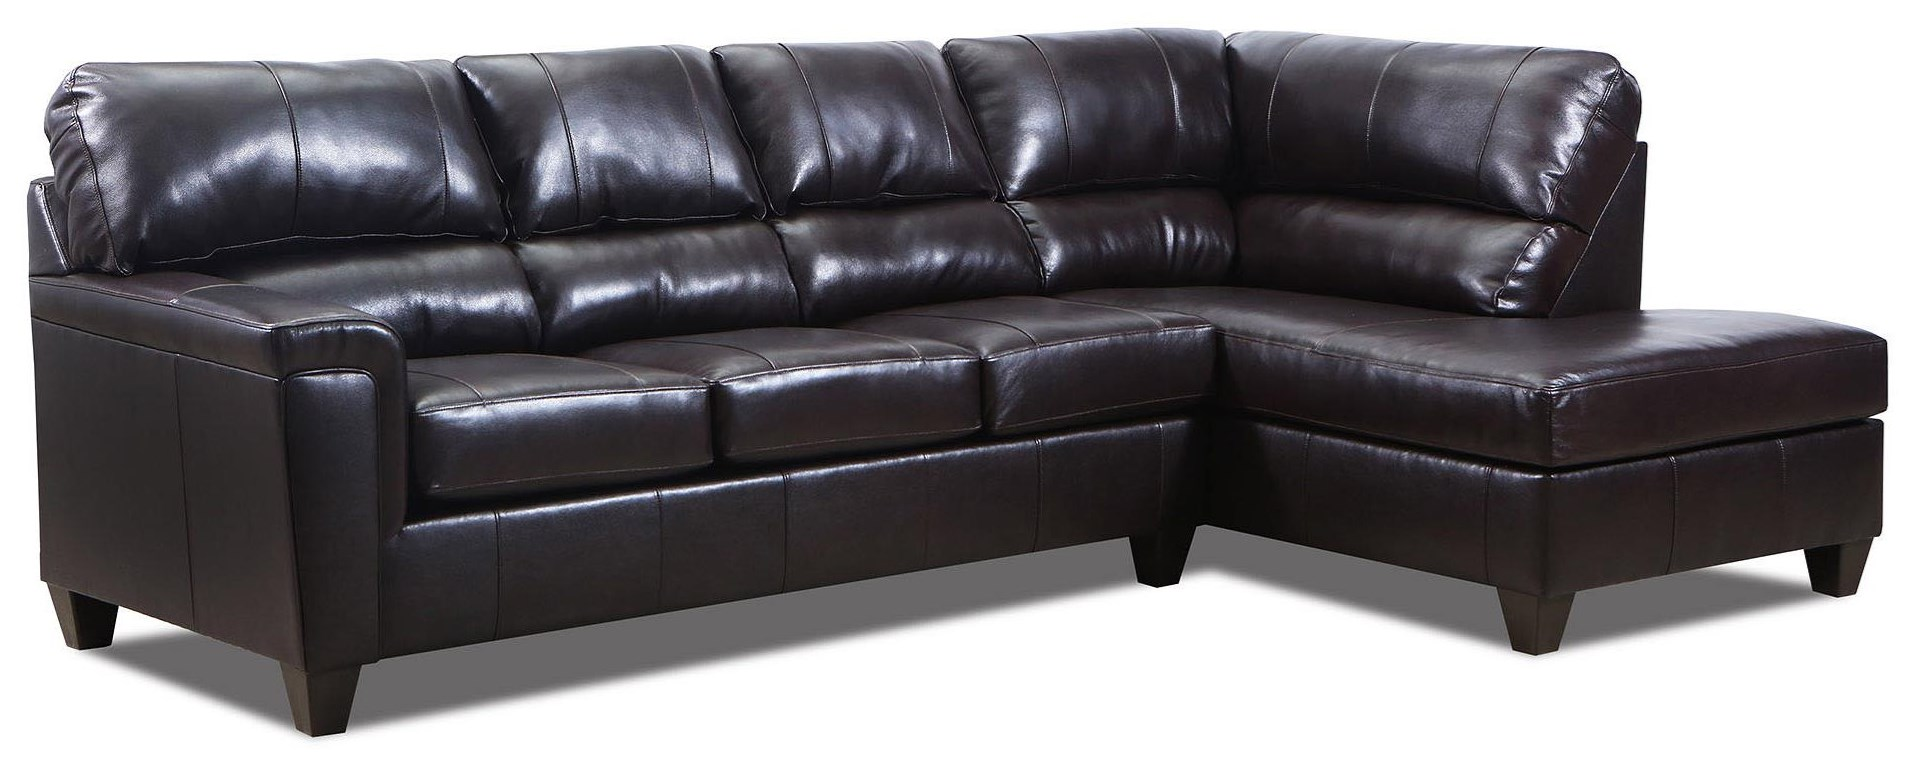 2PC Leather Chaise Sectional